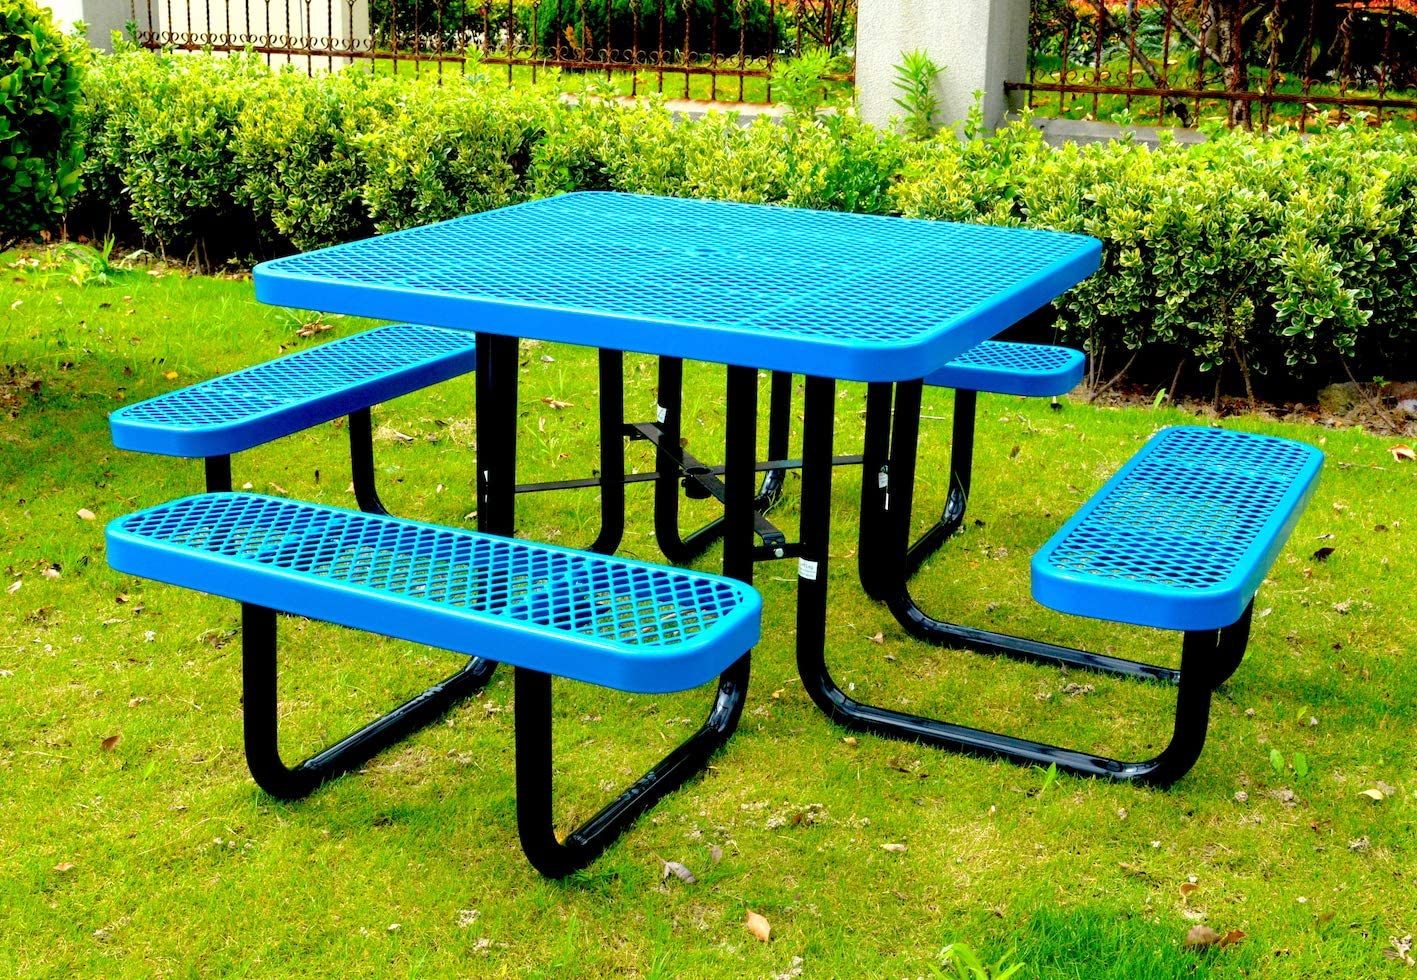 Lifeyard 46 Expanded Metal Square Picnic Table, Blue